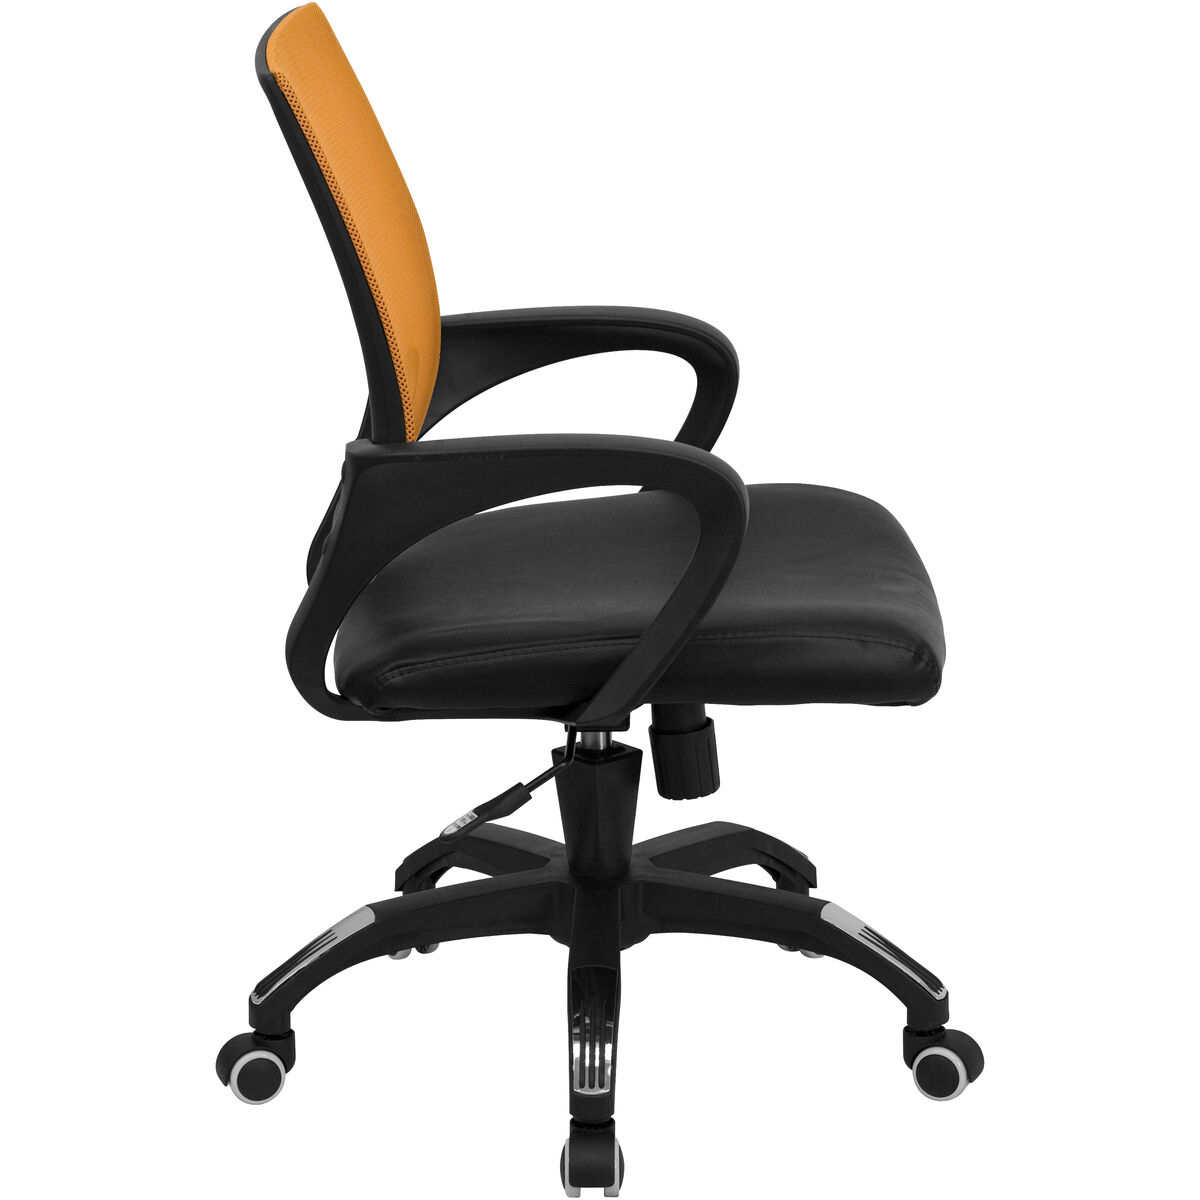 Our Mid Back Orange Mesh Swivel Task Chair With Black Leather Seat And Arms Is